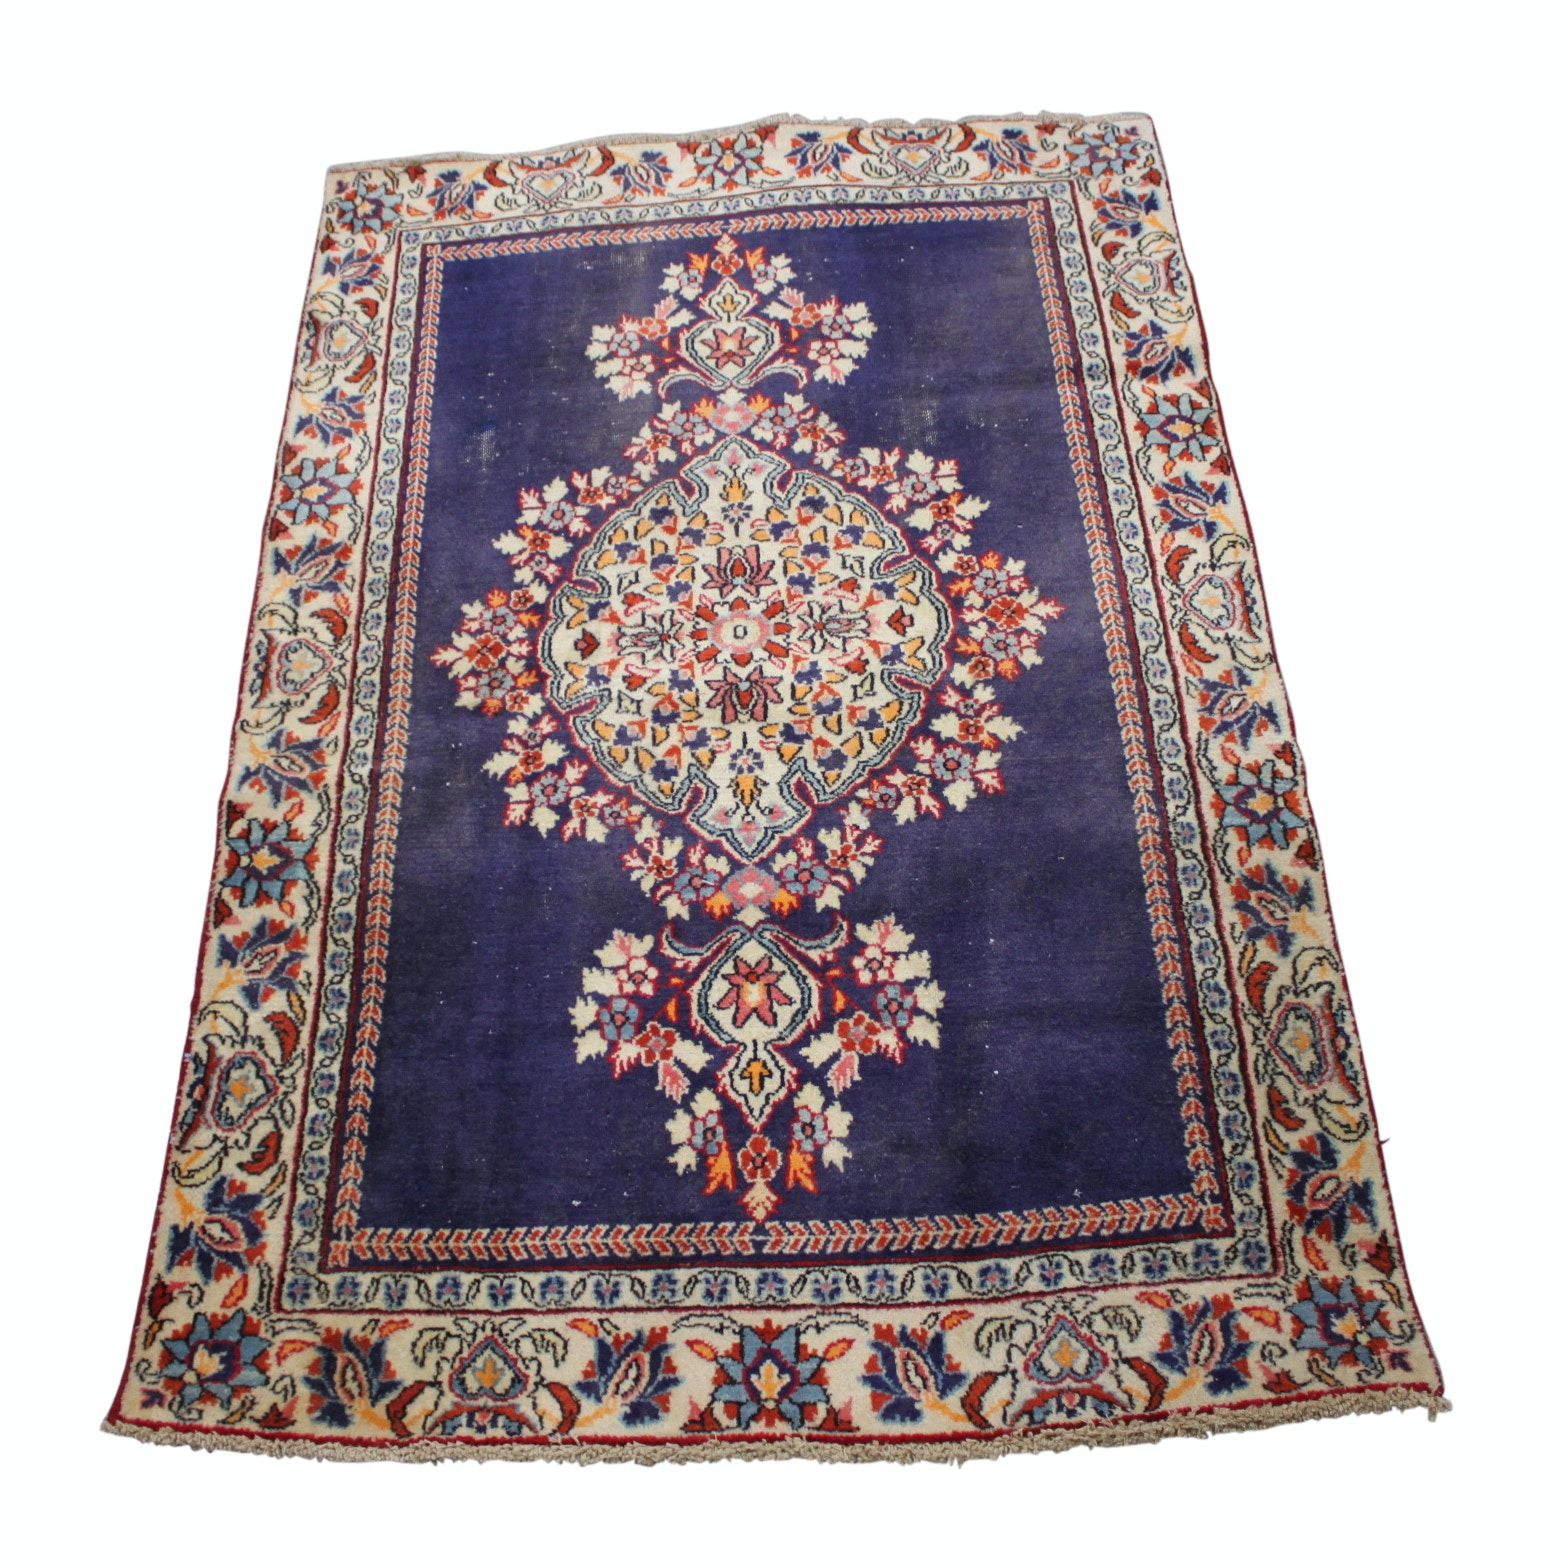 3' x 5' Hand Knotted Vintage Persian Qum Area Rug